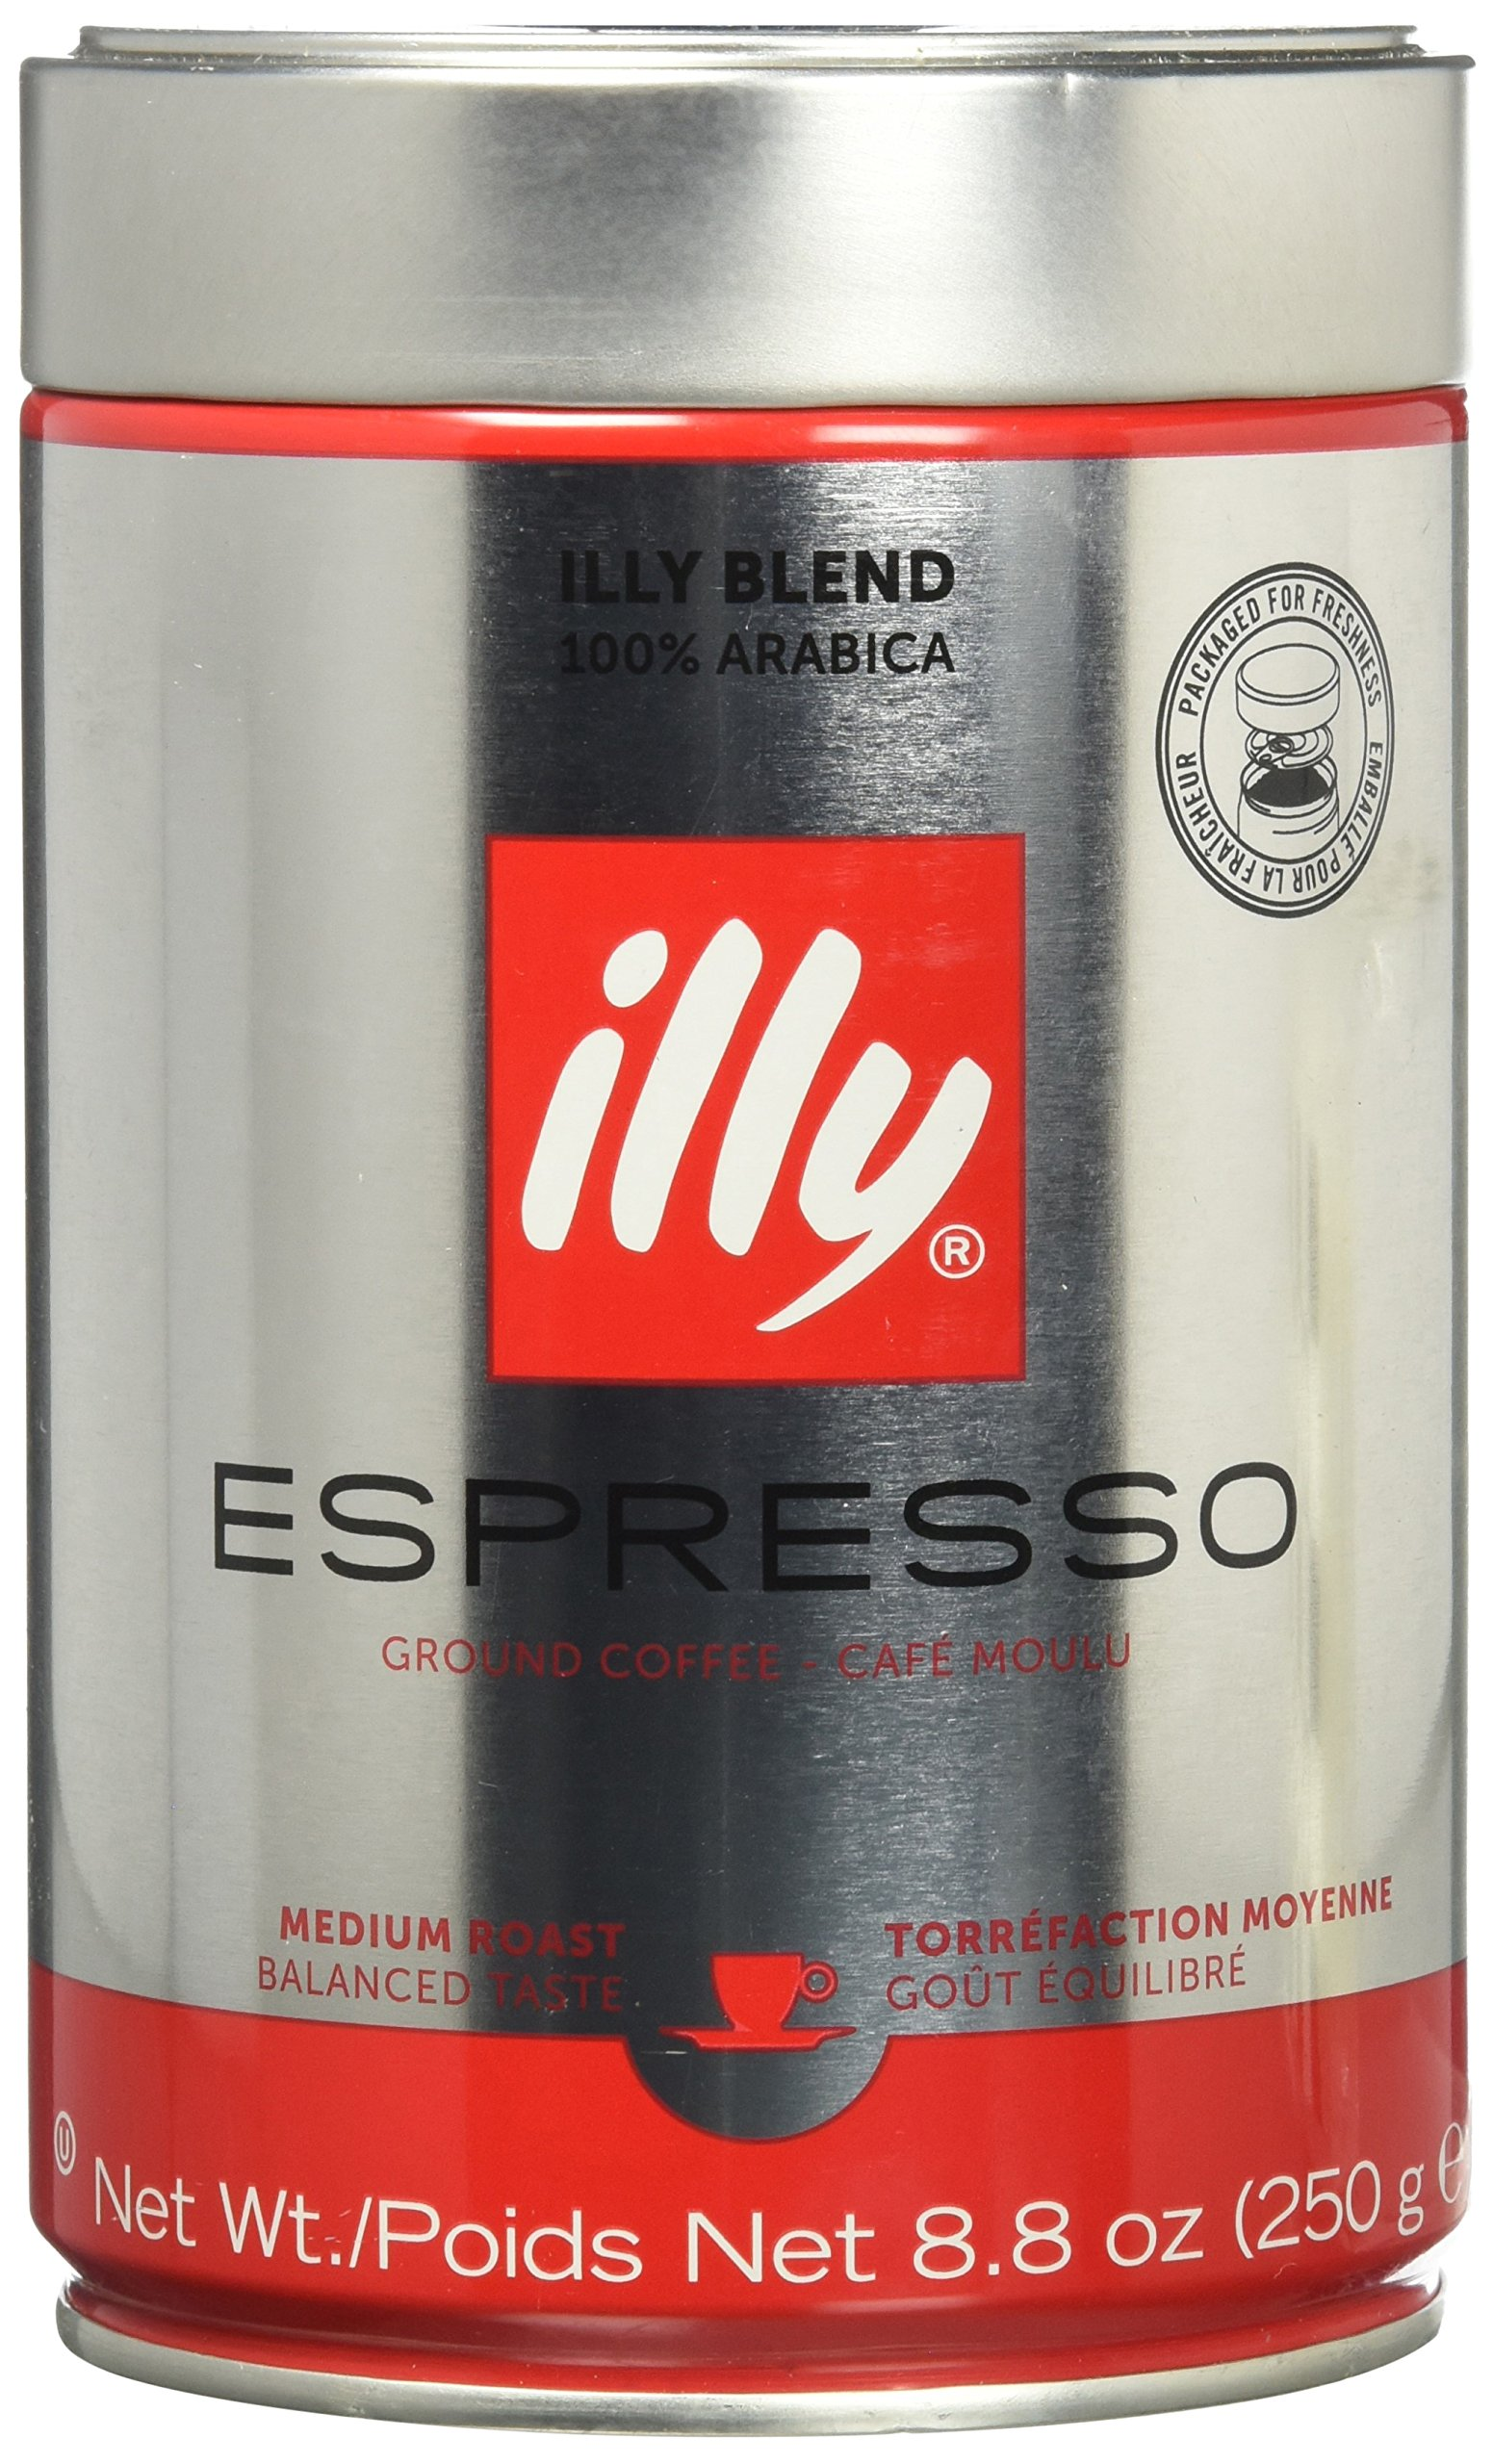 illy Coffee, Espresso Ground, Medium Roast, 100% Arabica Bean Signature Italian Blend, Premium Gourmet Roast Pressurized Fresh 8.8 Ounce Tin, Espresso Machine Preparations. by Illy